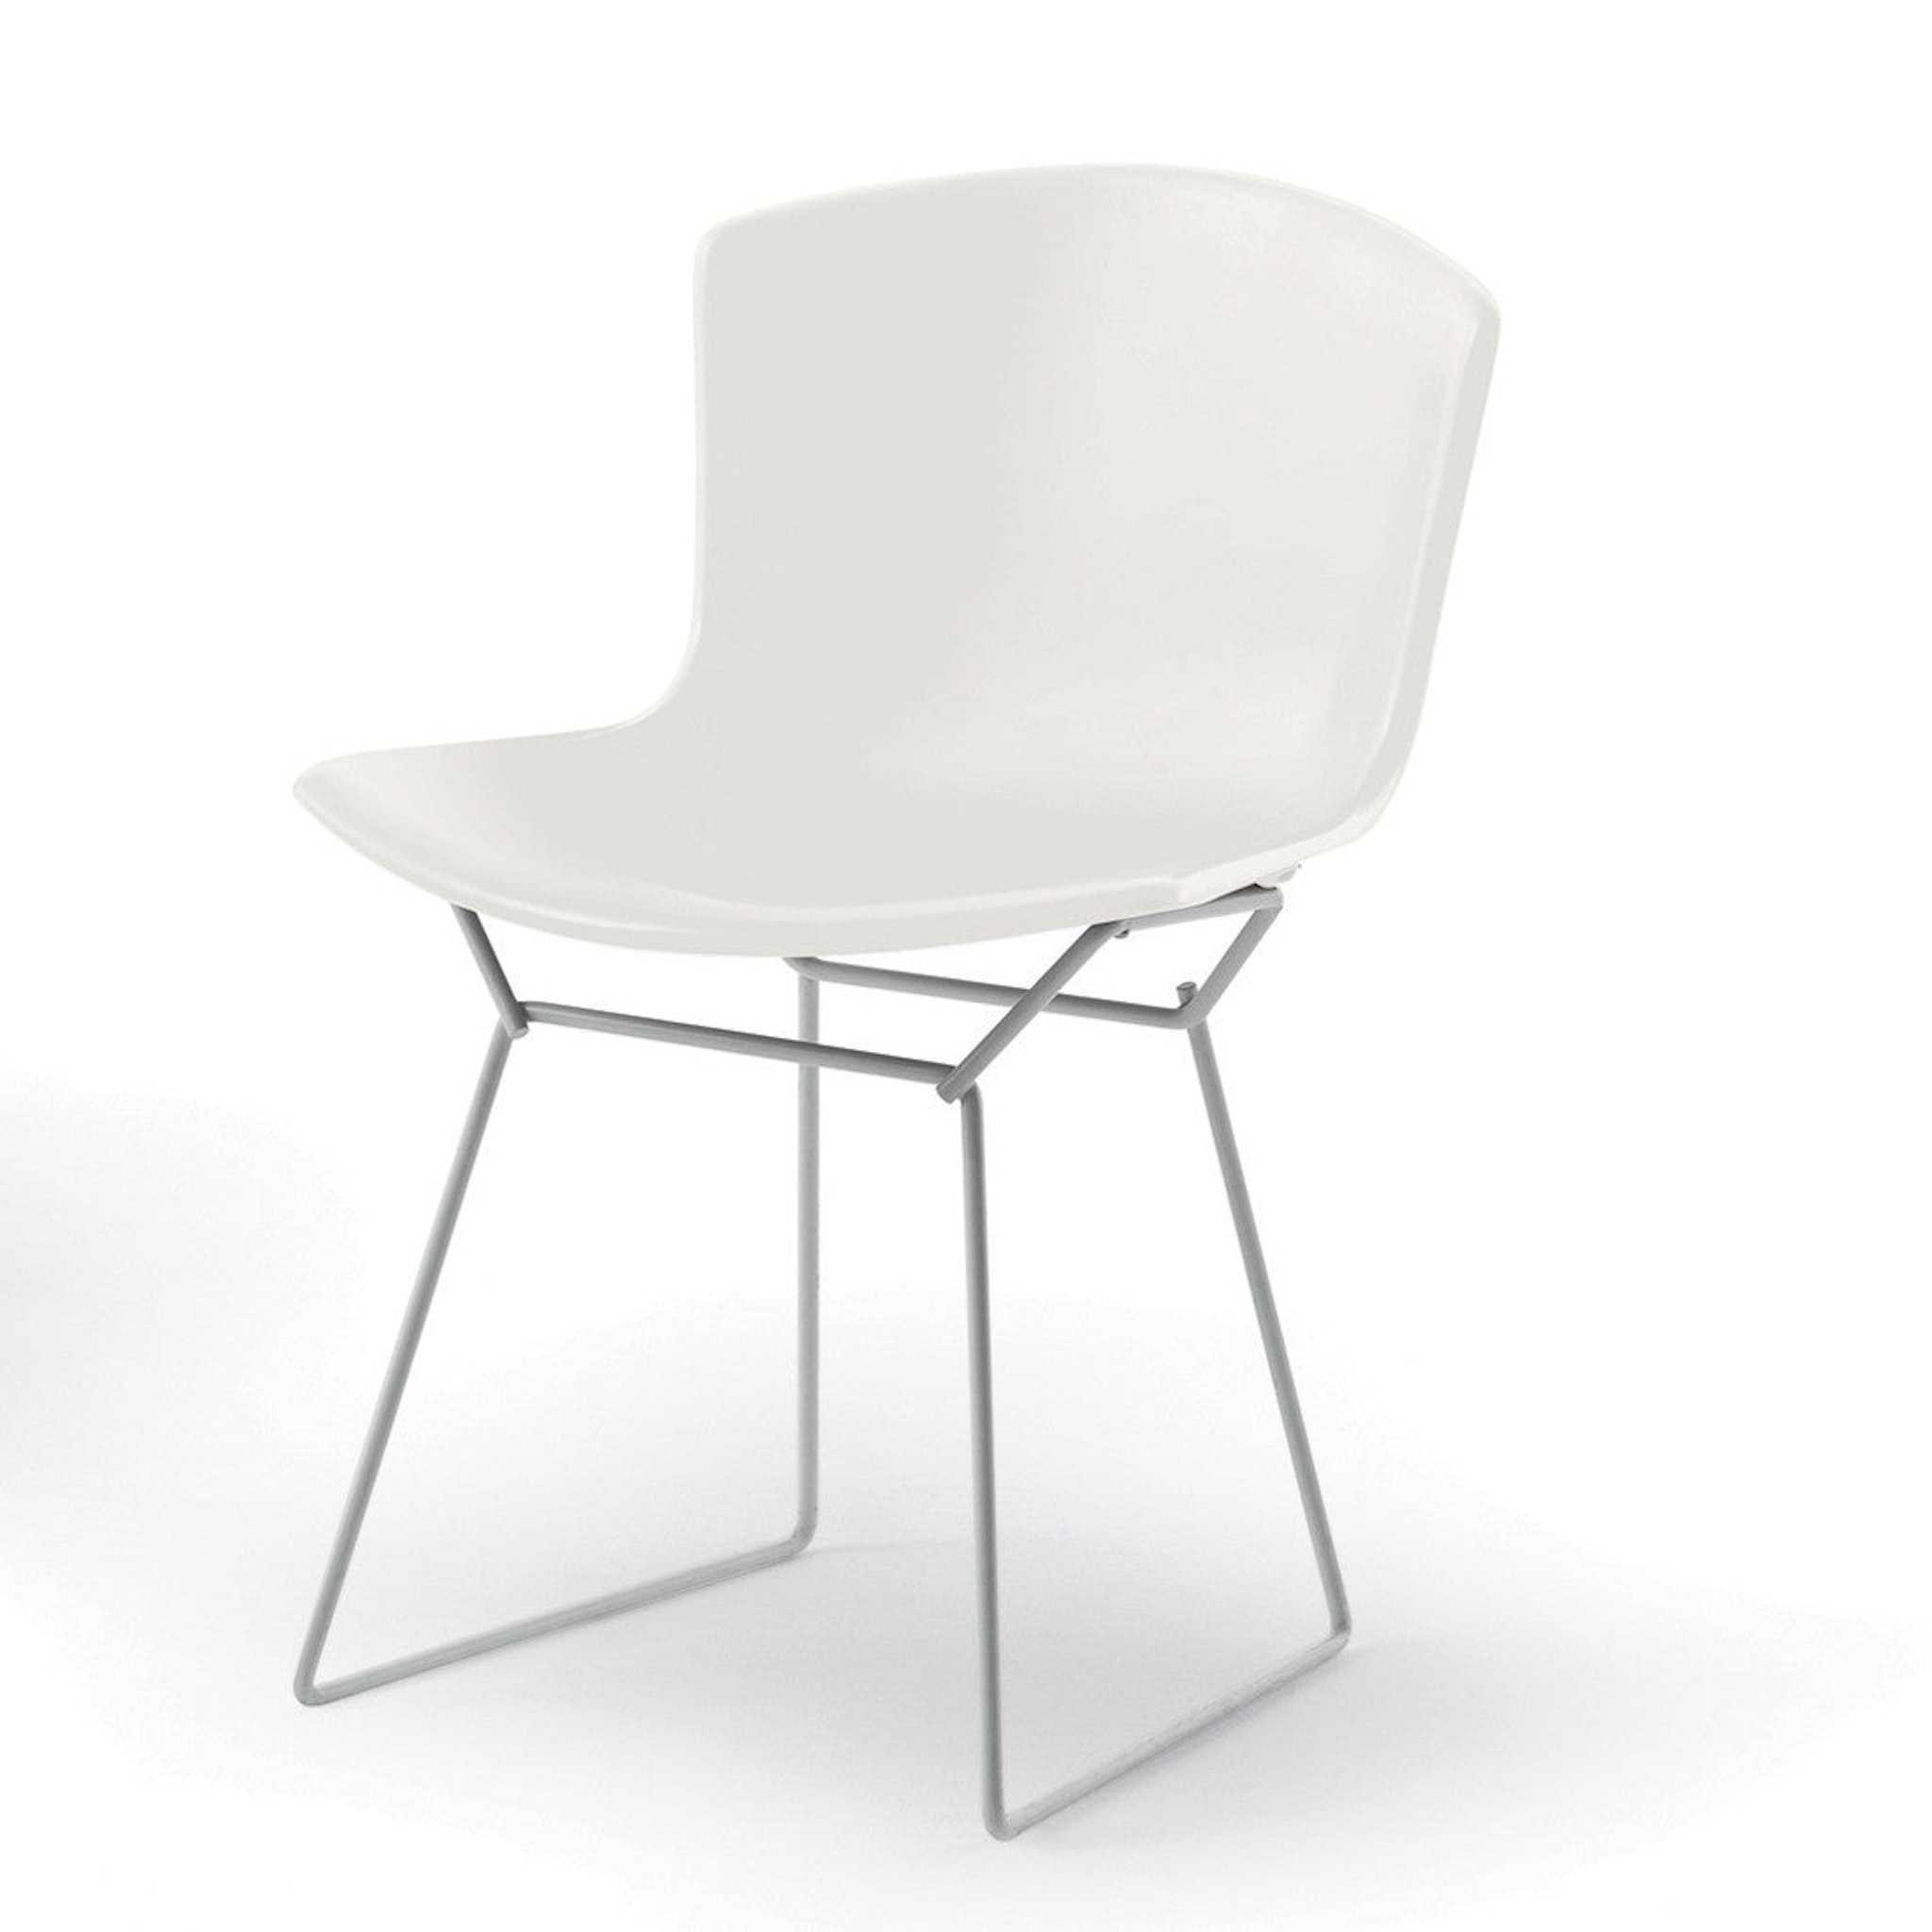 Knoll Bertoia Plastic Side Chair by Knoll